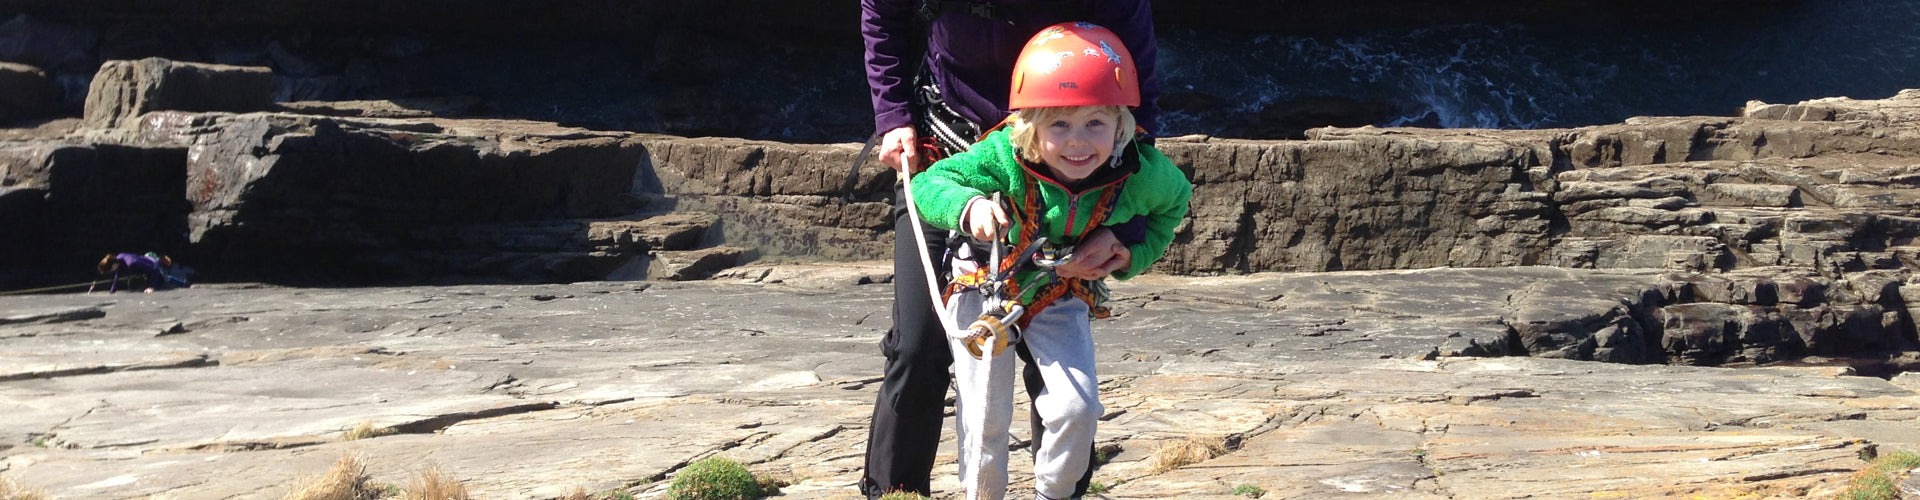 Kids Climbing Harnesses